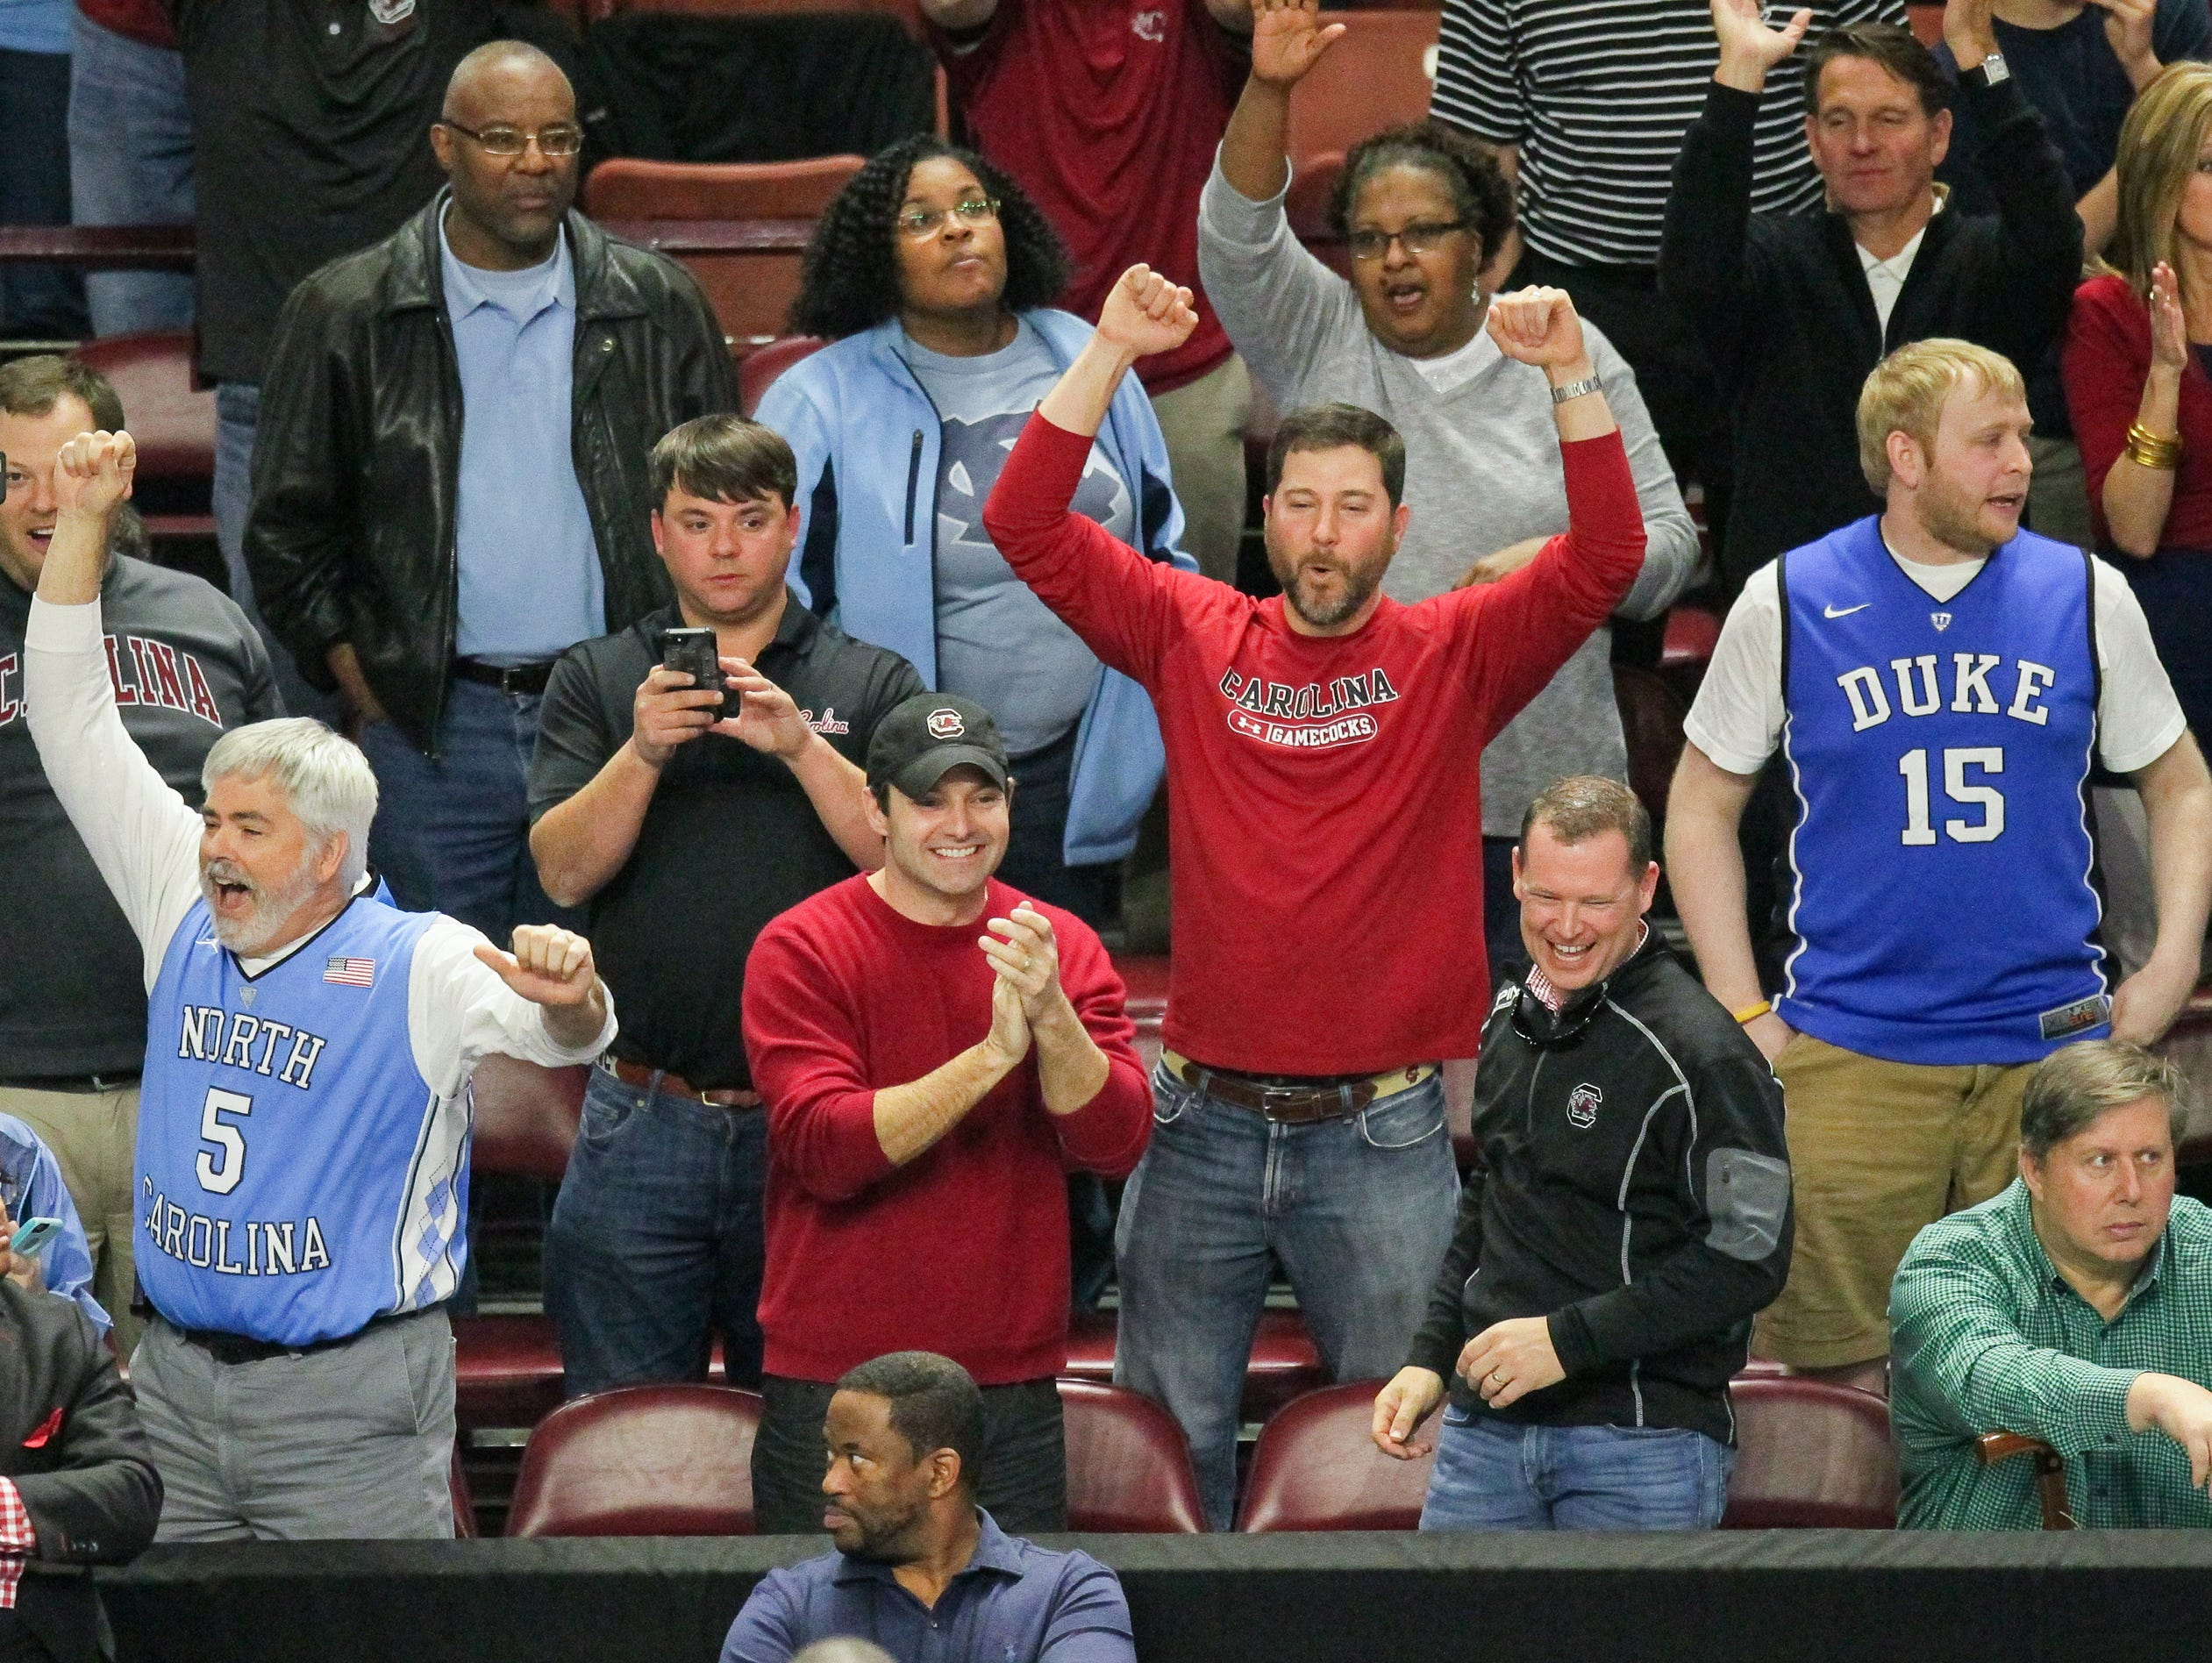 South Carolina fans celebrate near cheering North Carolina fans after beating Duke 88-81 during the 2nd round of the NCAA Tournament at Bon Secours Wellness Arena in downtown Greenville on Sunday, March 19, 2017.